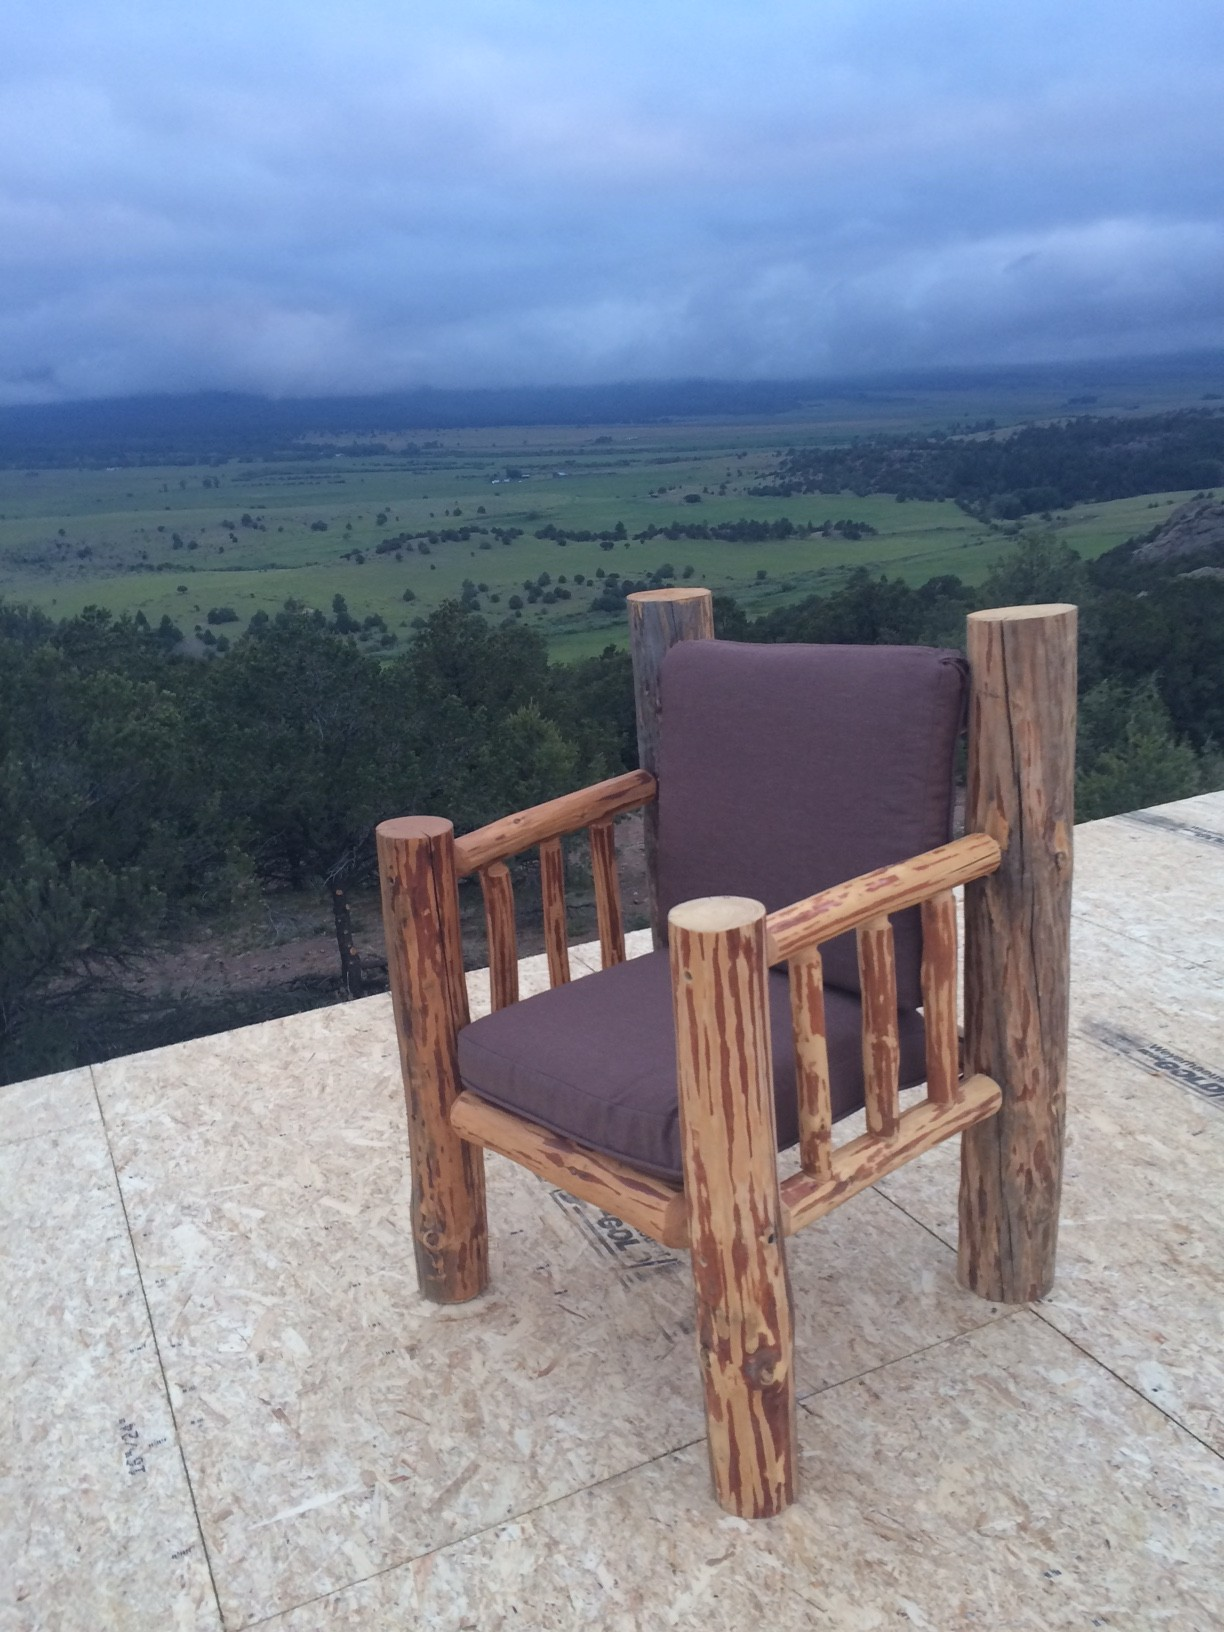 This Is My U201cprayer Chairu201d. Can You See The Mountains In The View Behind?  No?,u2026. Neither Can I. Thatu0027s Why I Need A Prayer Chair.